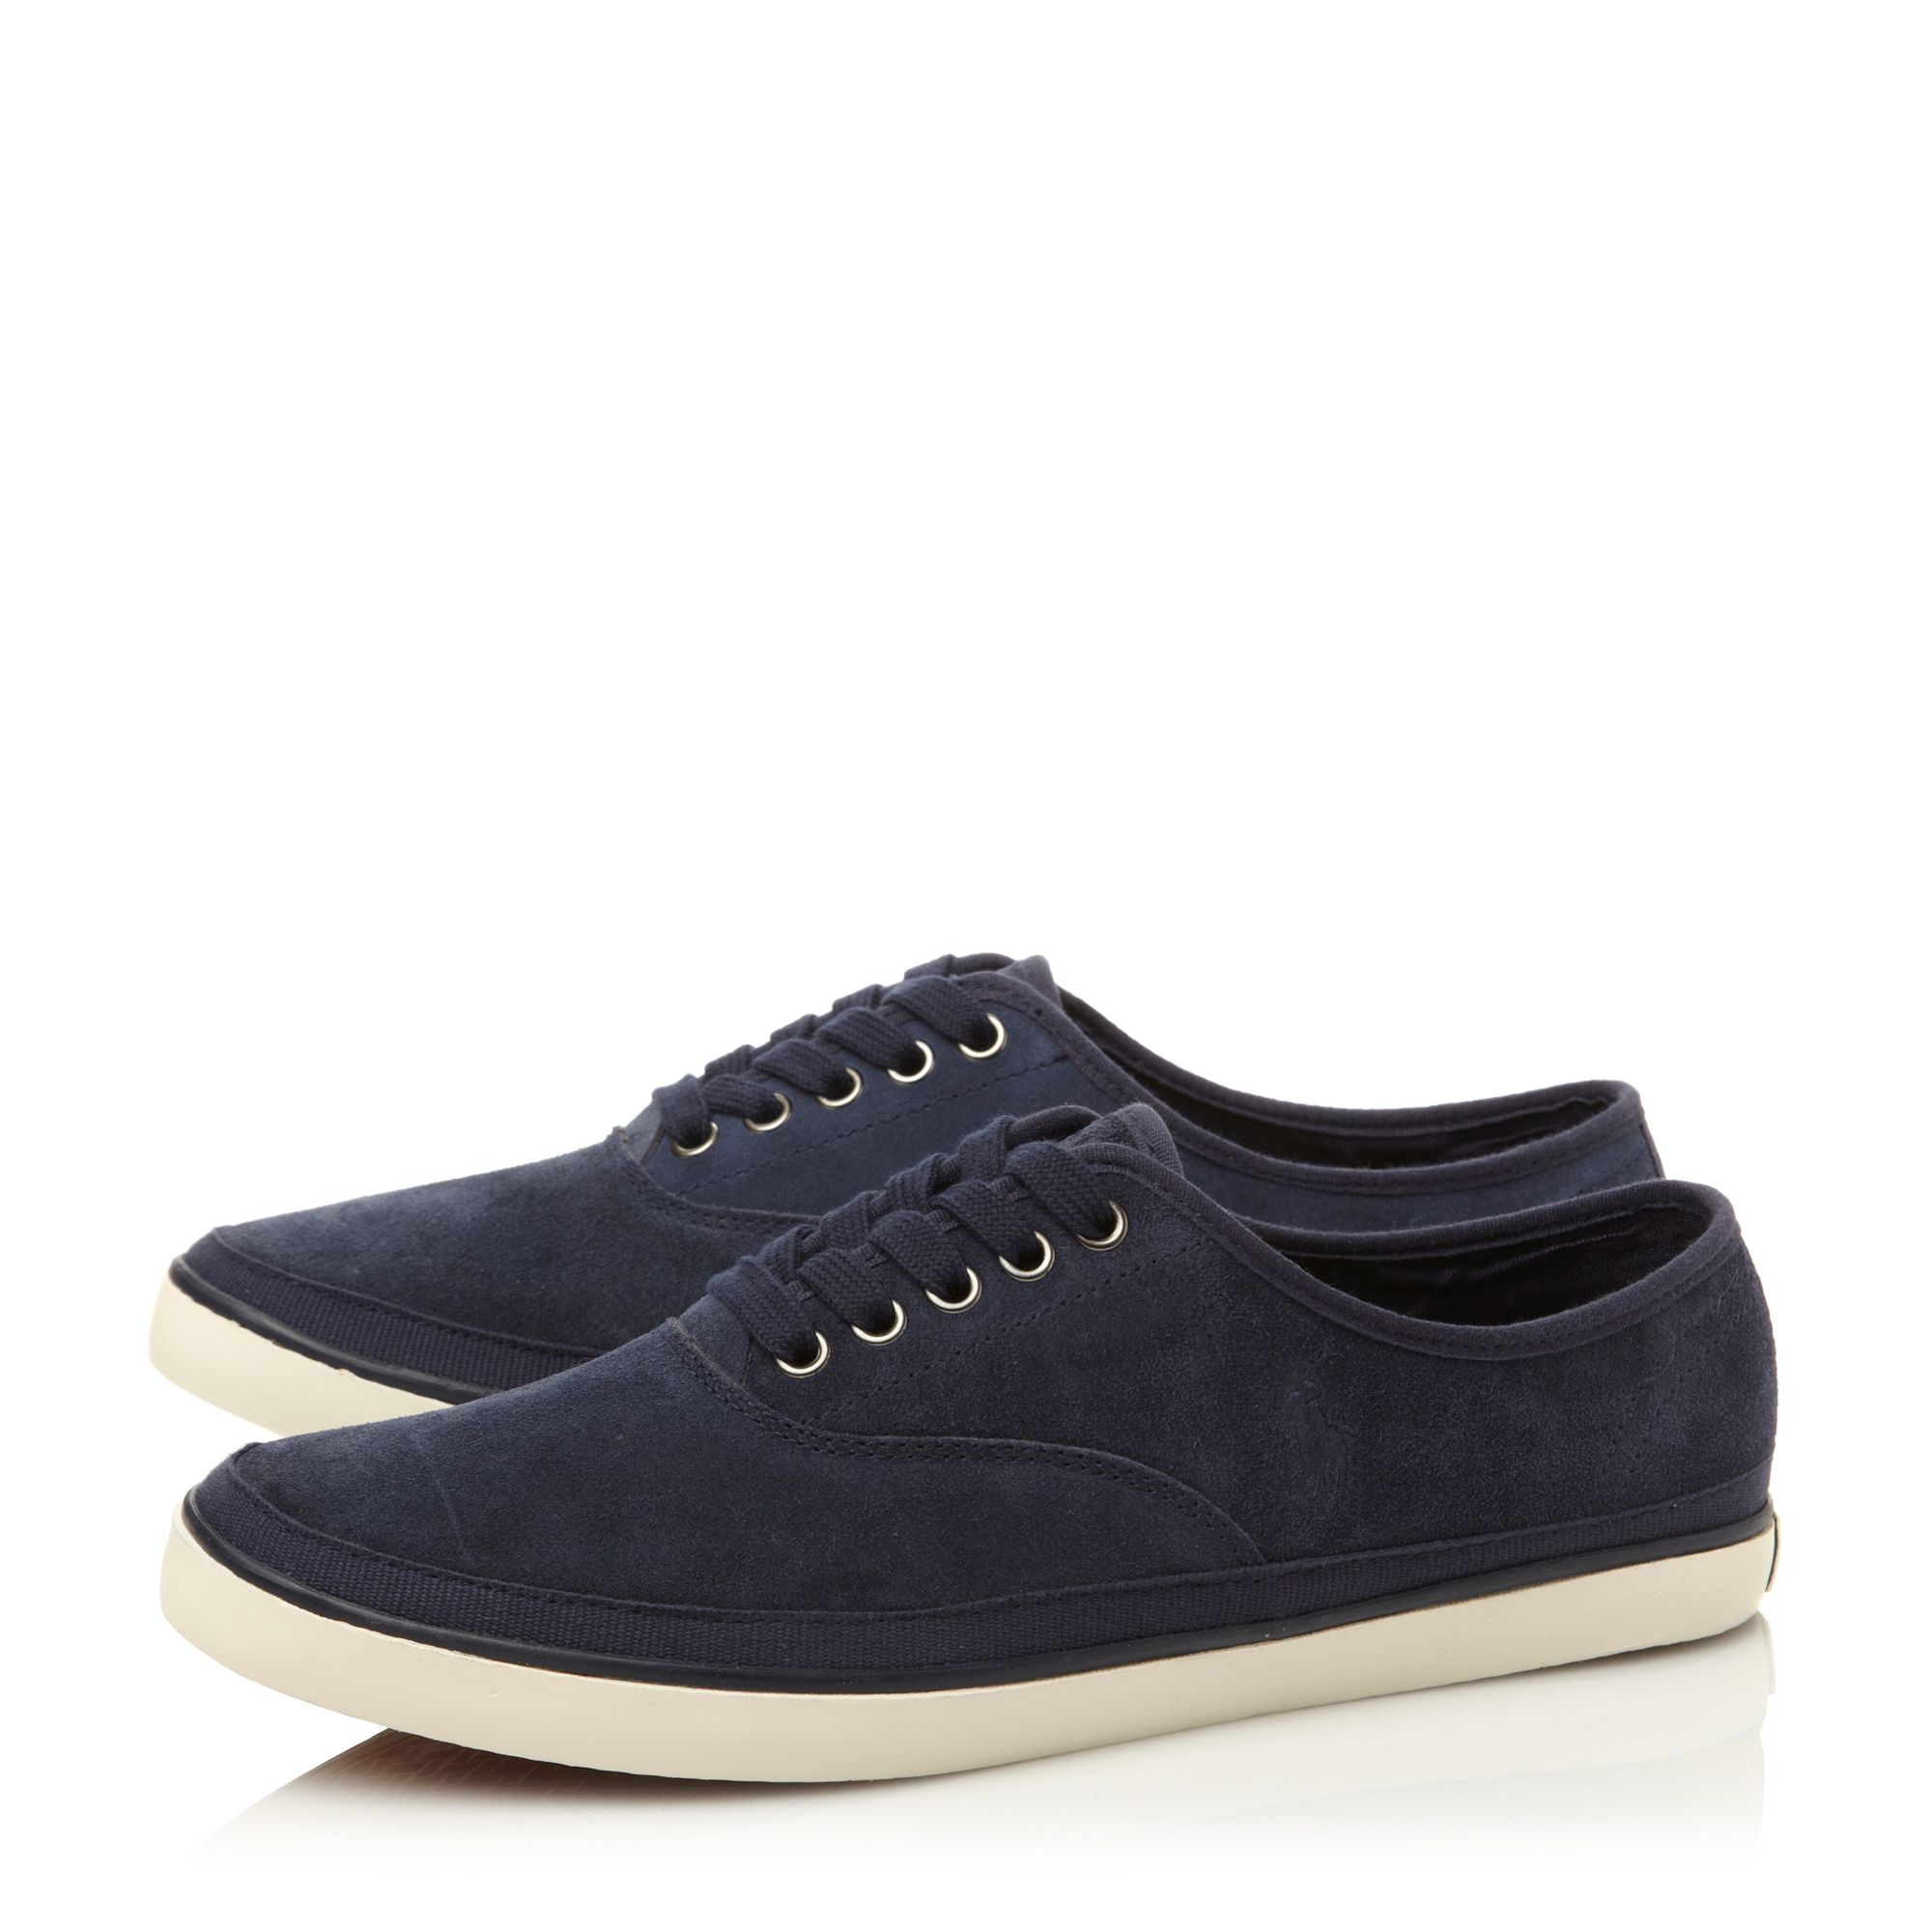 Oran ii lace up low profile vulc pumps